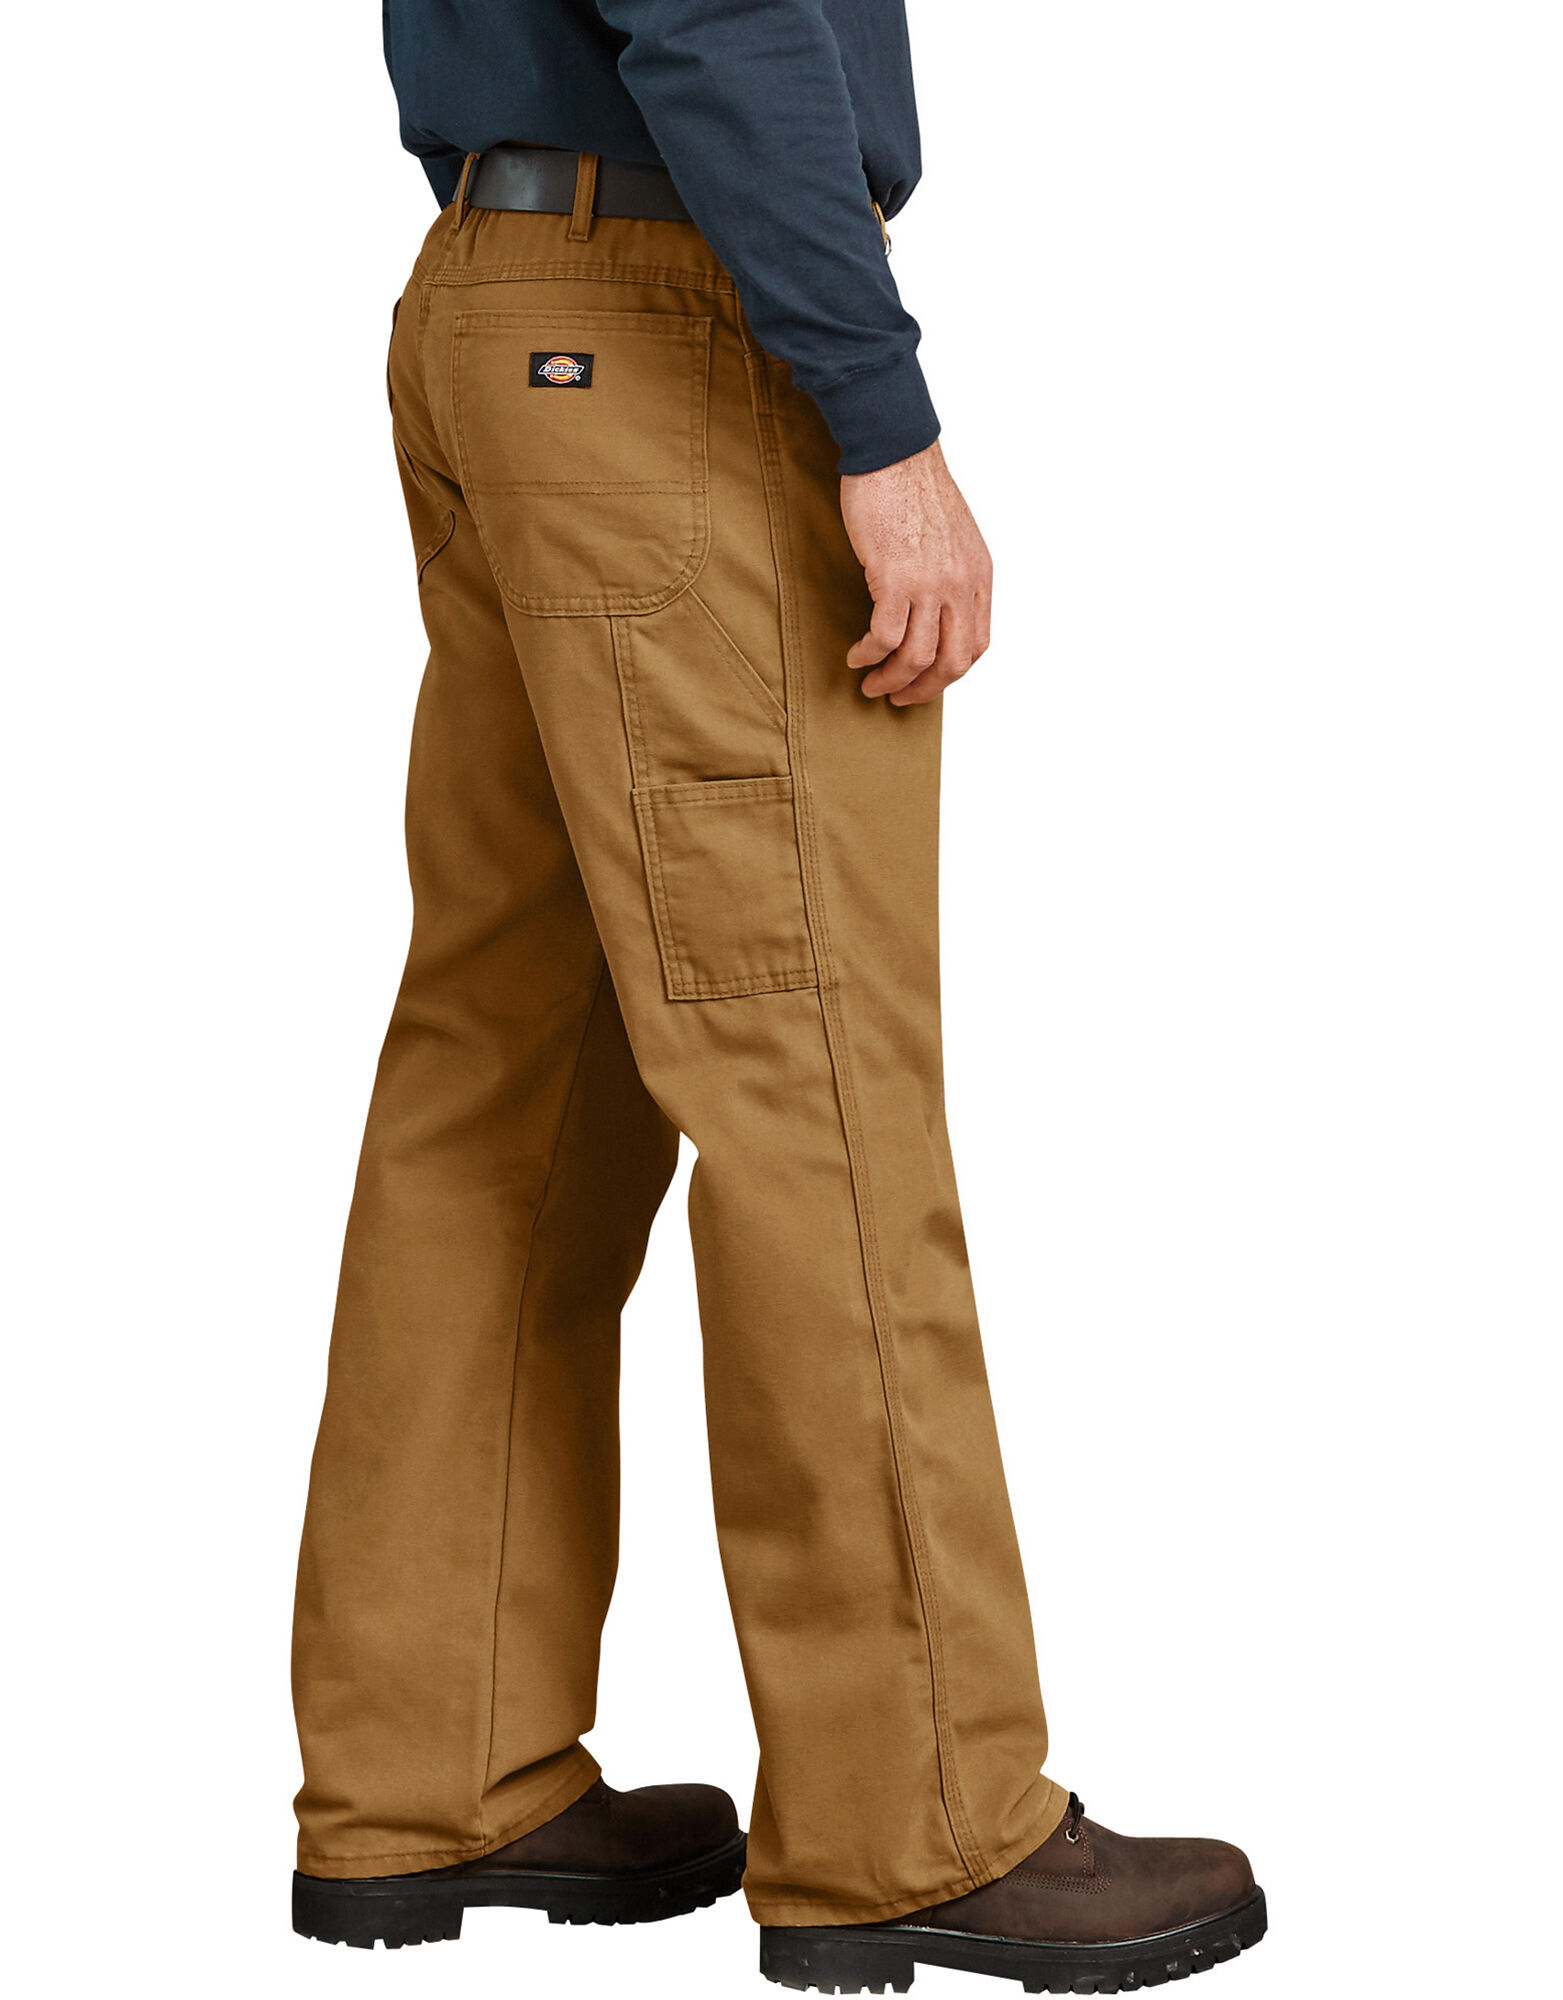 130c76cfd996a ... Industrial Relaxed Fit Straight Leg Carpenter Duck Jeans - Brown Duck  ...